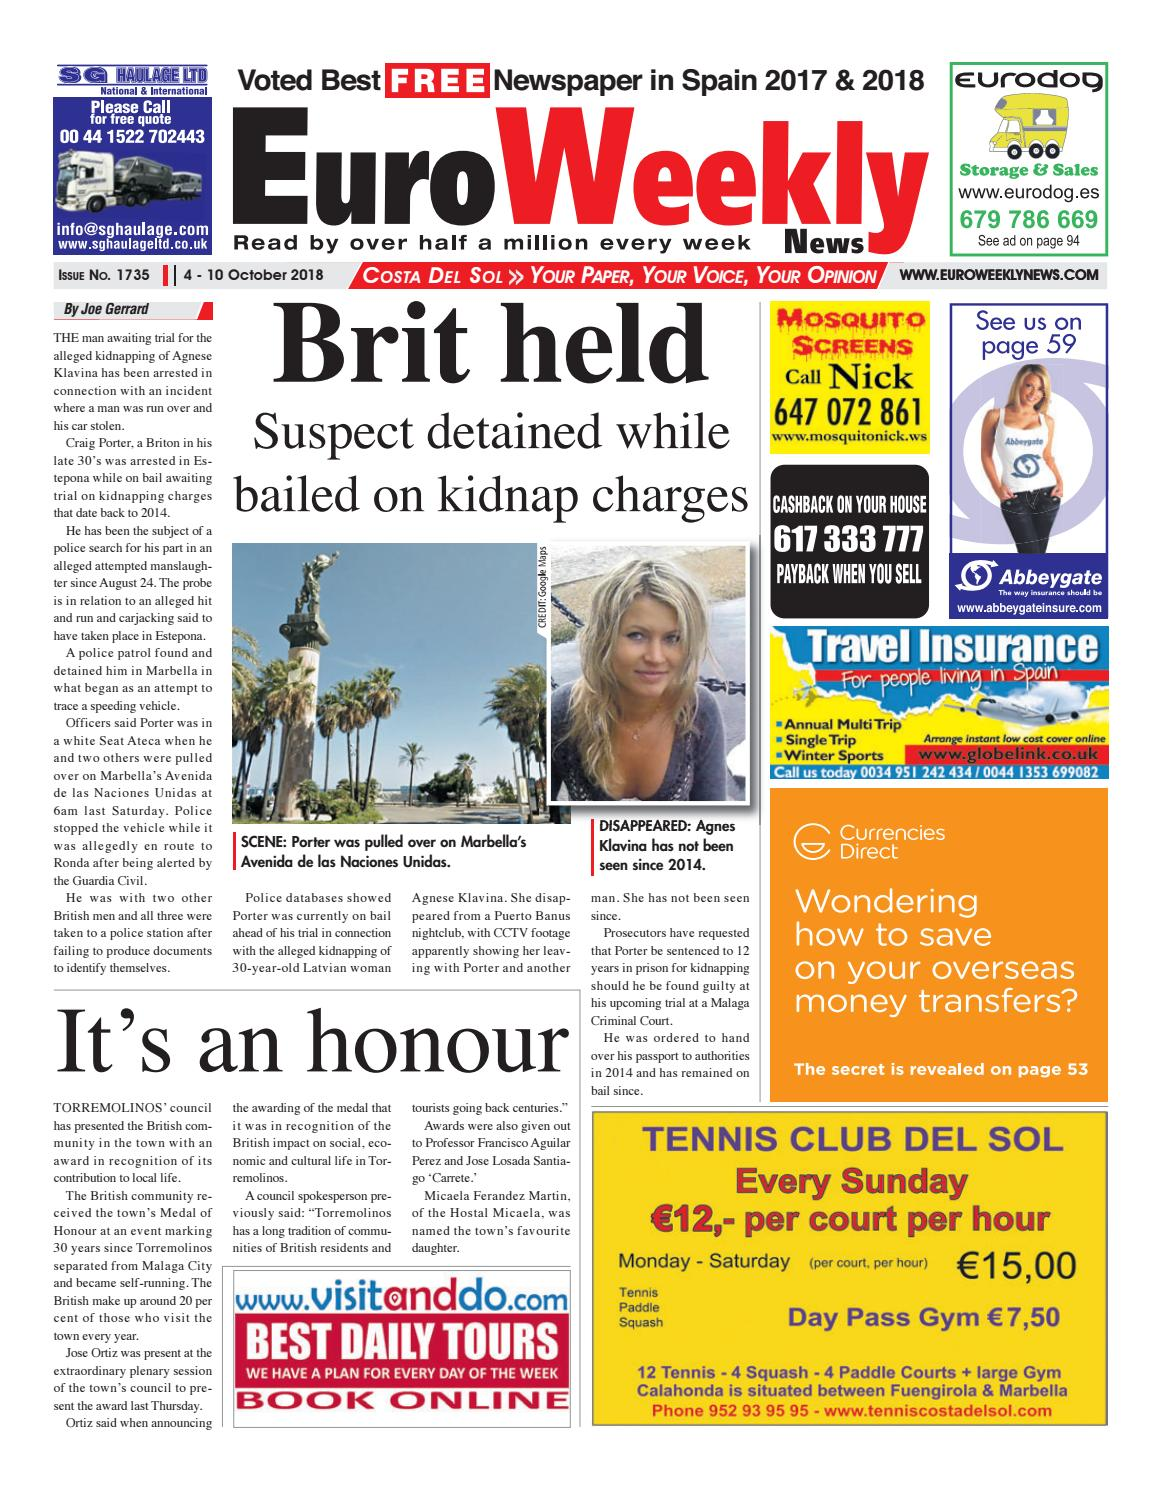 8d86815ad214 Euro Weekly News - Costa del Sol October 4 - 10 2018 Issue 1735 by Euro  Weekly News Media S.A. - issuu